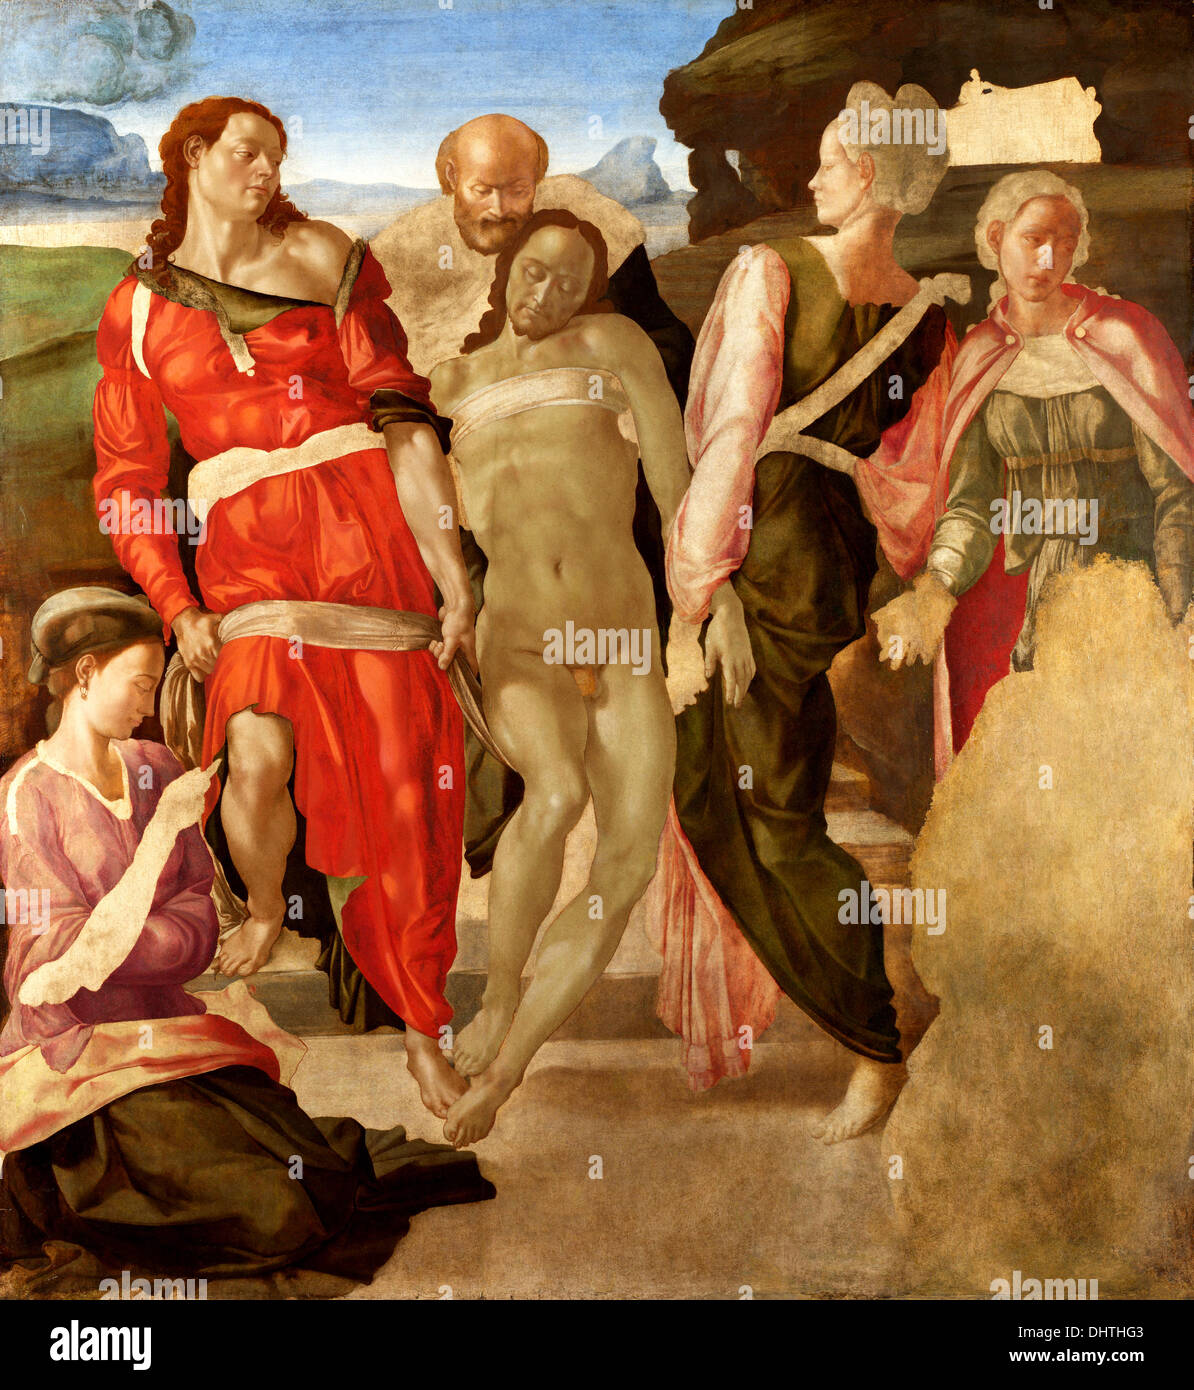 The Entombment - by Michelangelo, 1501 - Stock Image